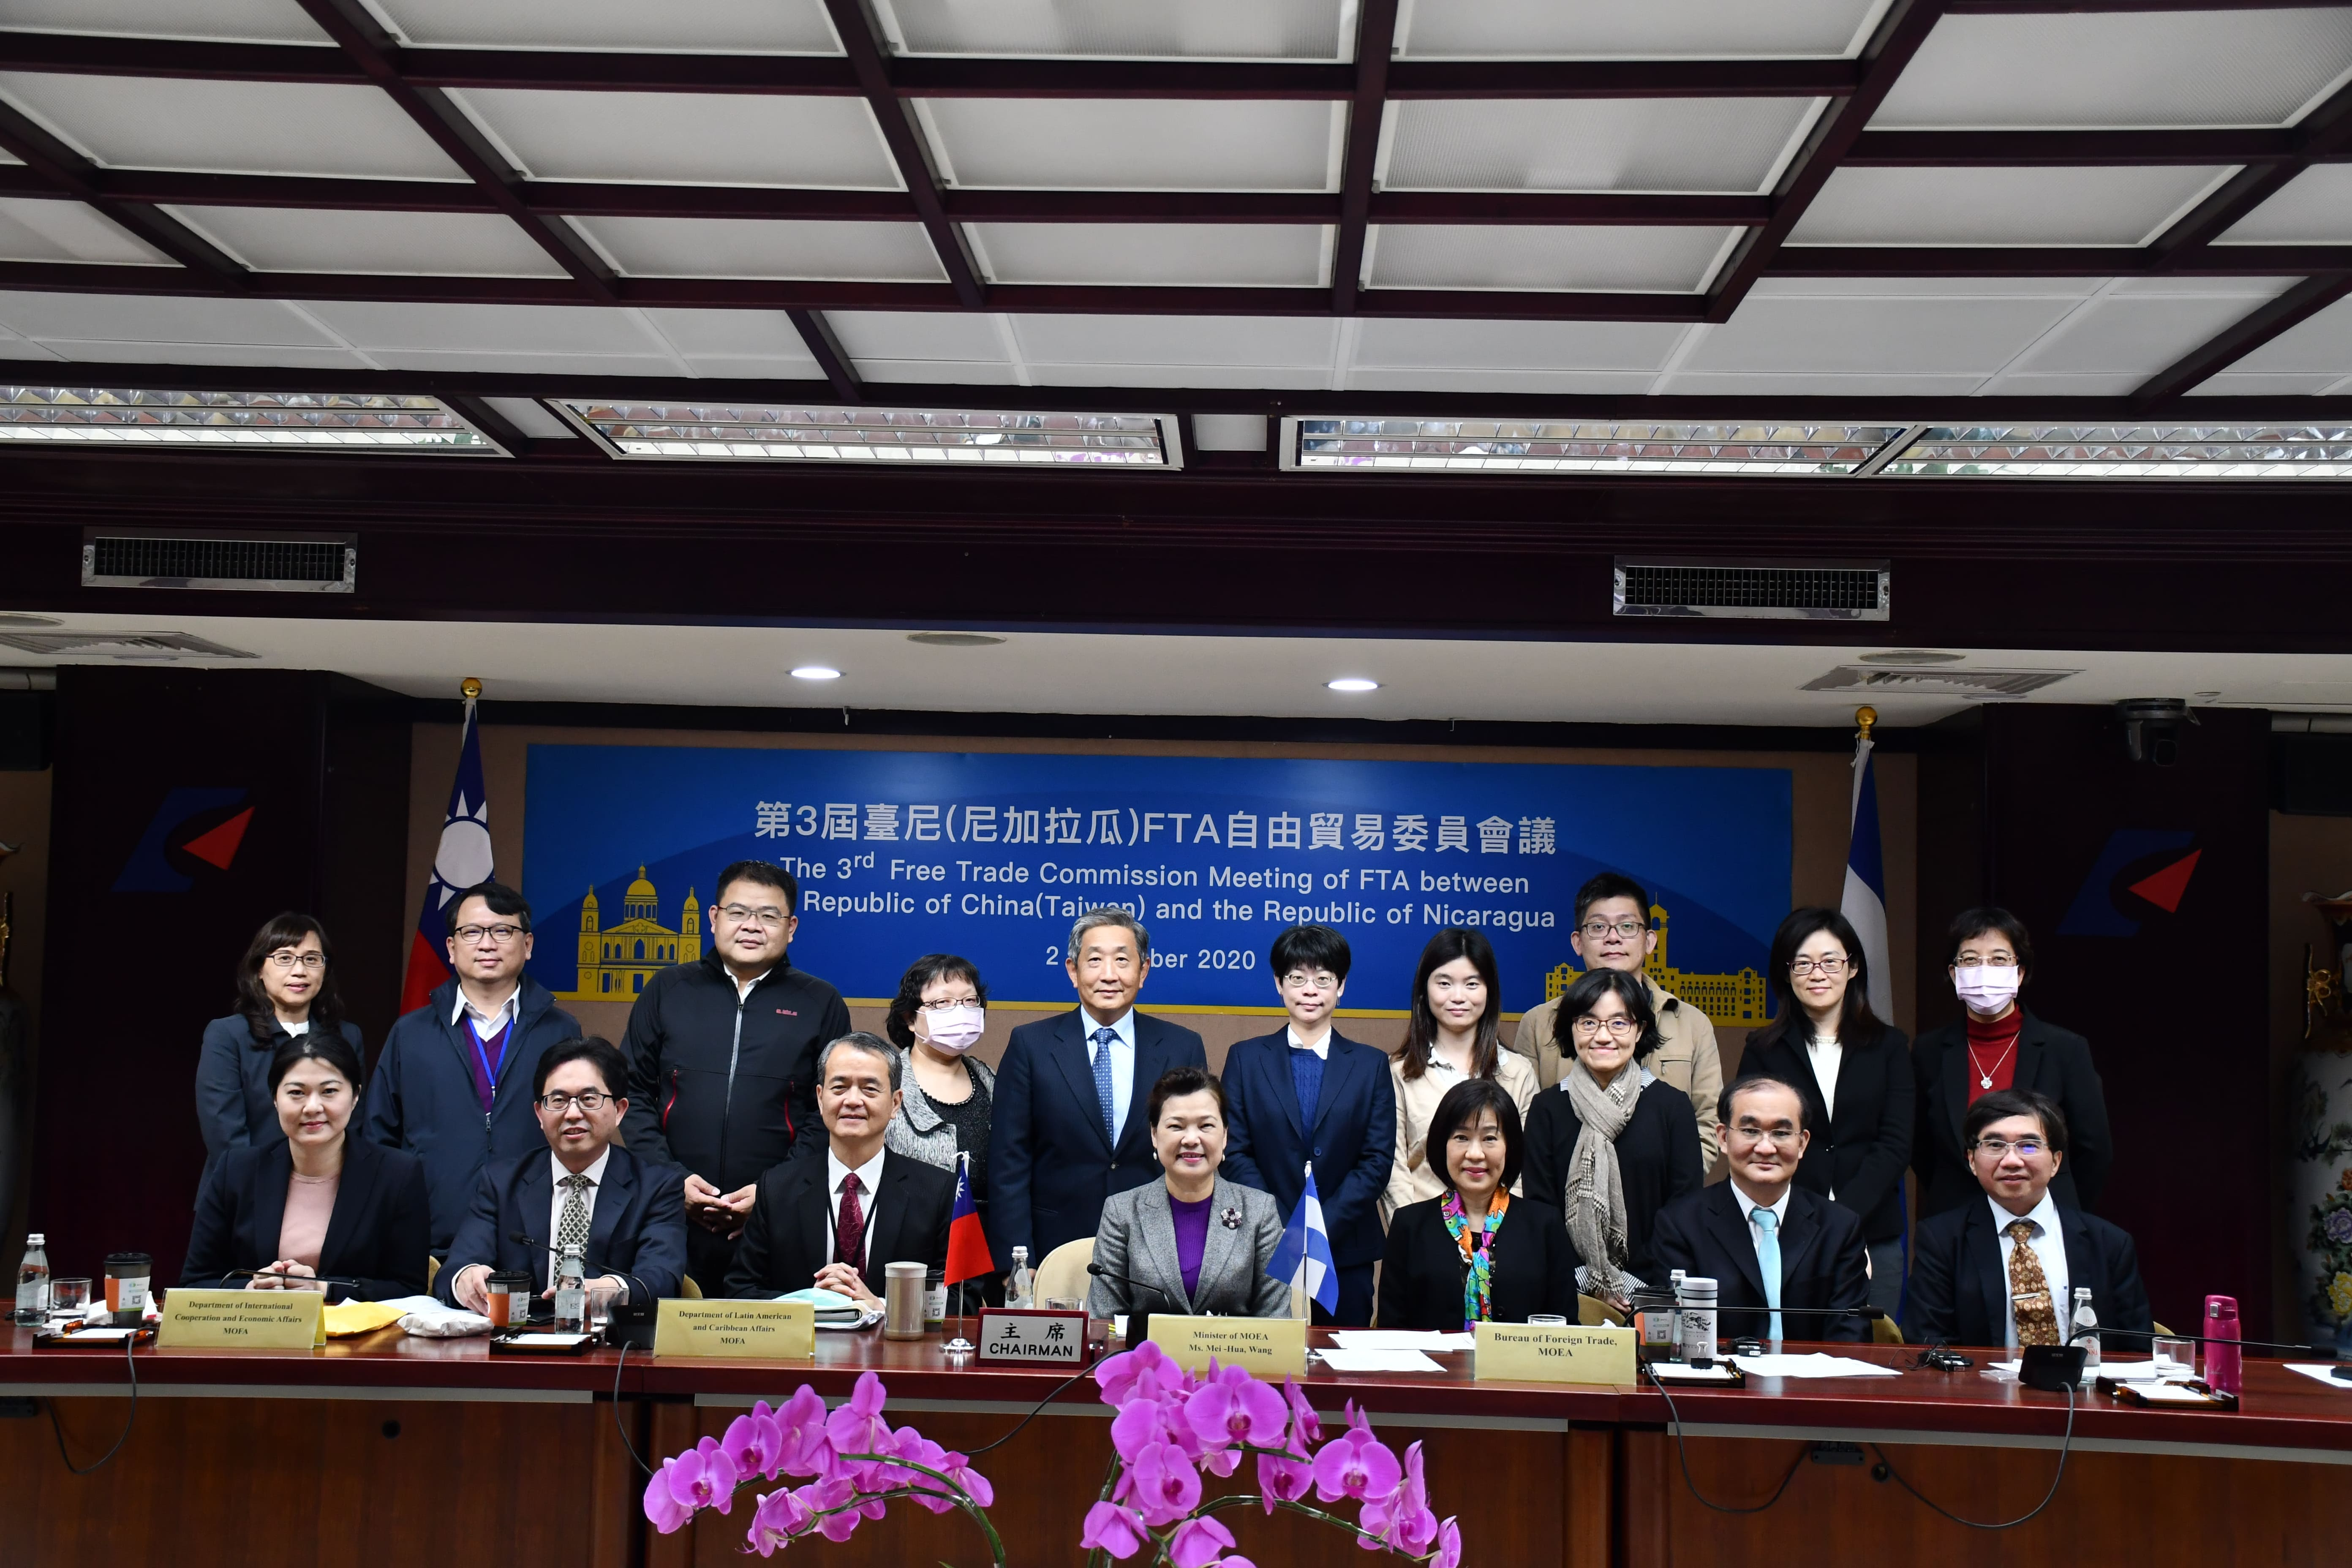 3rd Taiwan-Nicaragua Free Trade Commission Meeting Reduces Tariff on Three Taiwanese Industrial Items